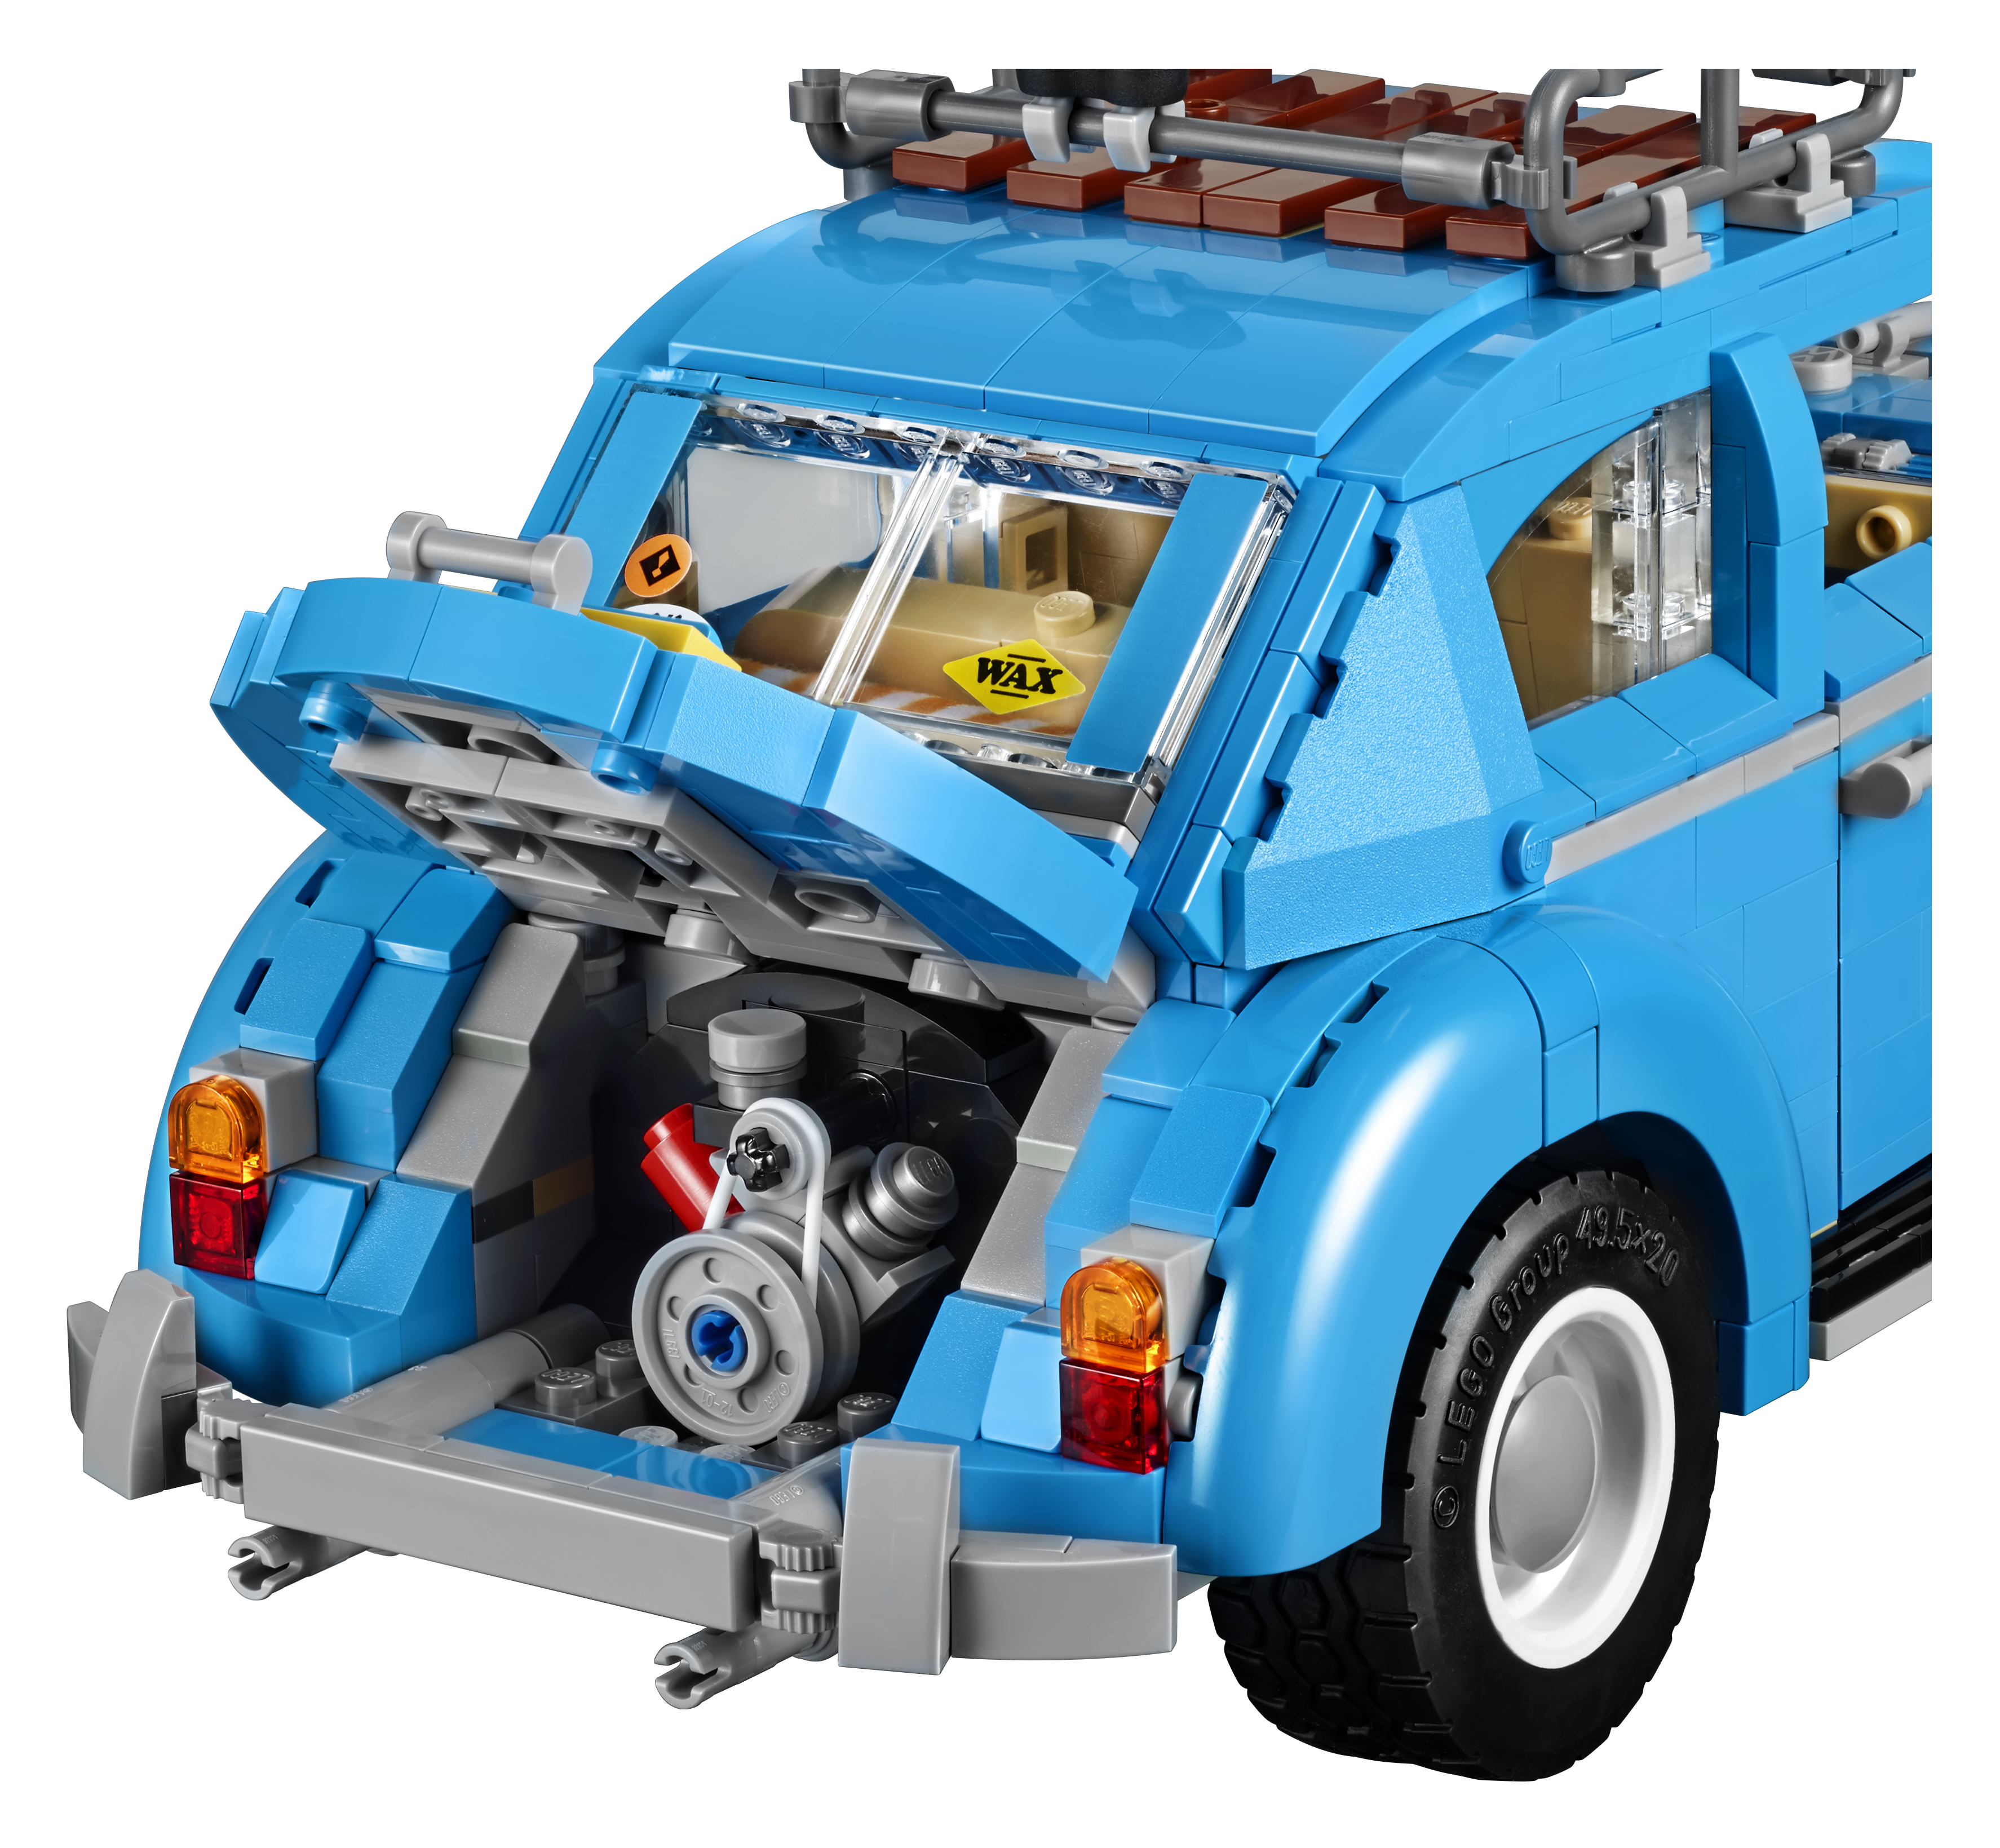 Vw Beetle Wankel Engine: LEGO Updates The Bug With The All New 10252 Volkswagen Beetle